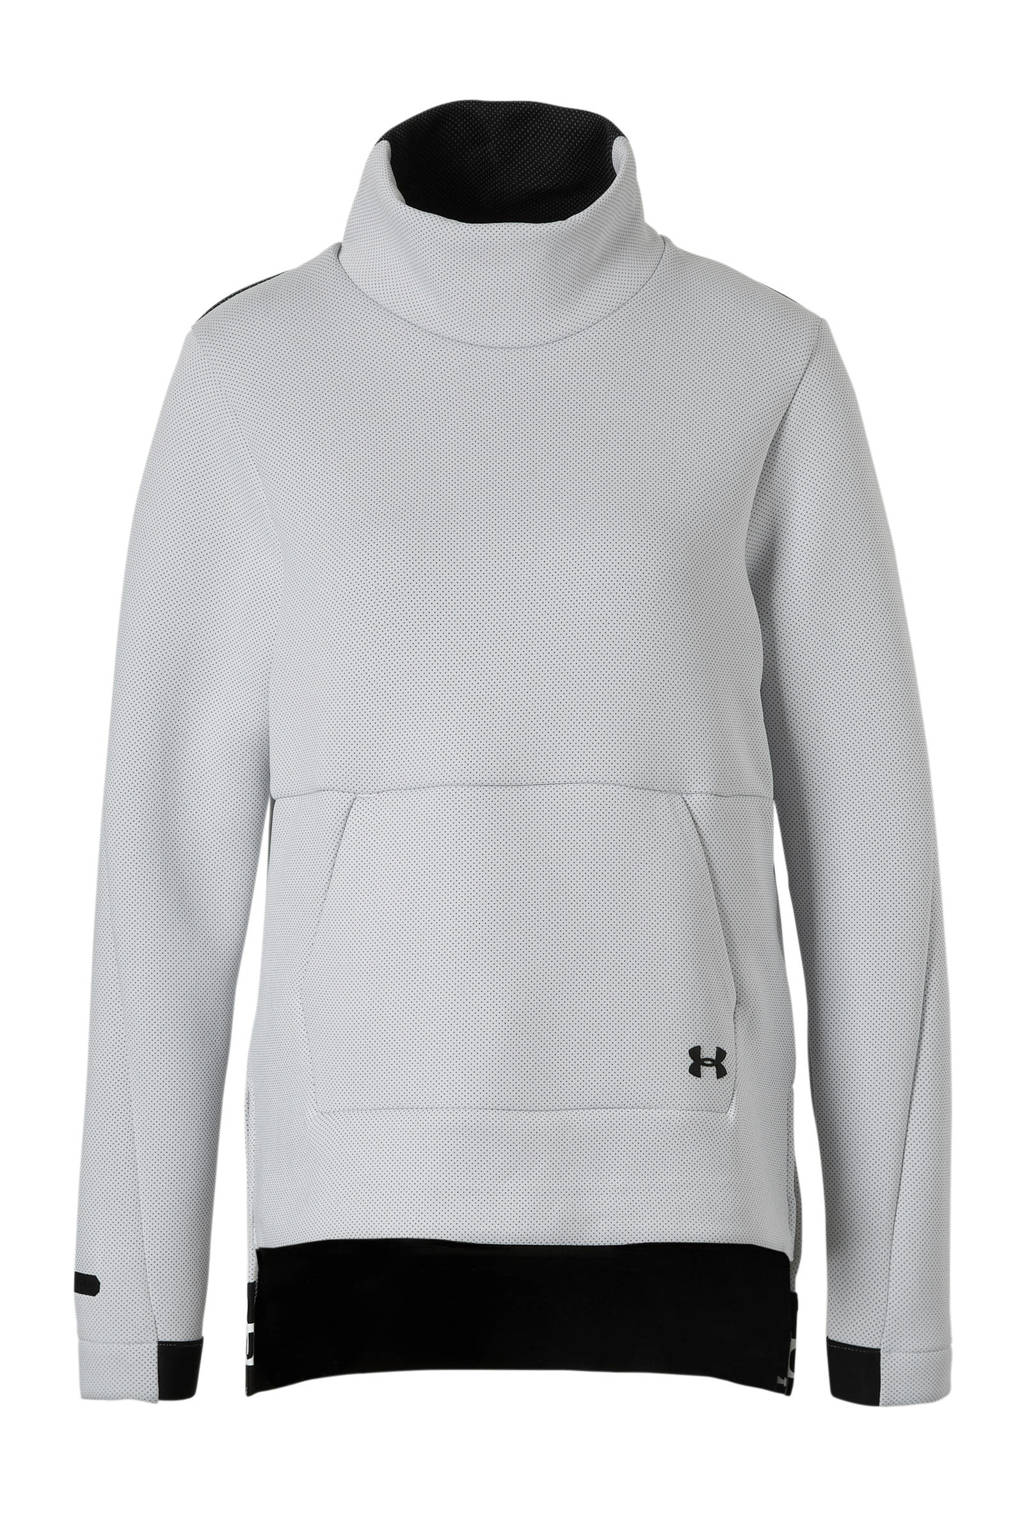 Under Armour sportsweater wit, Wit/zwart